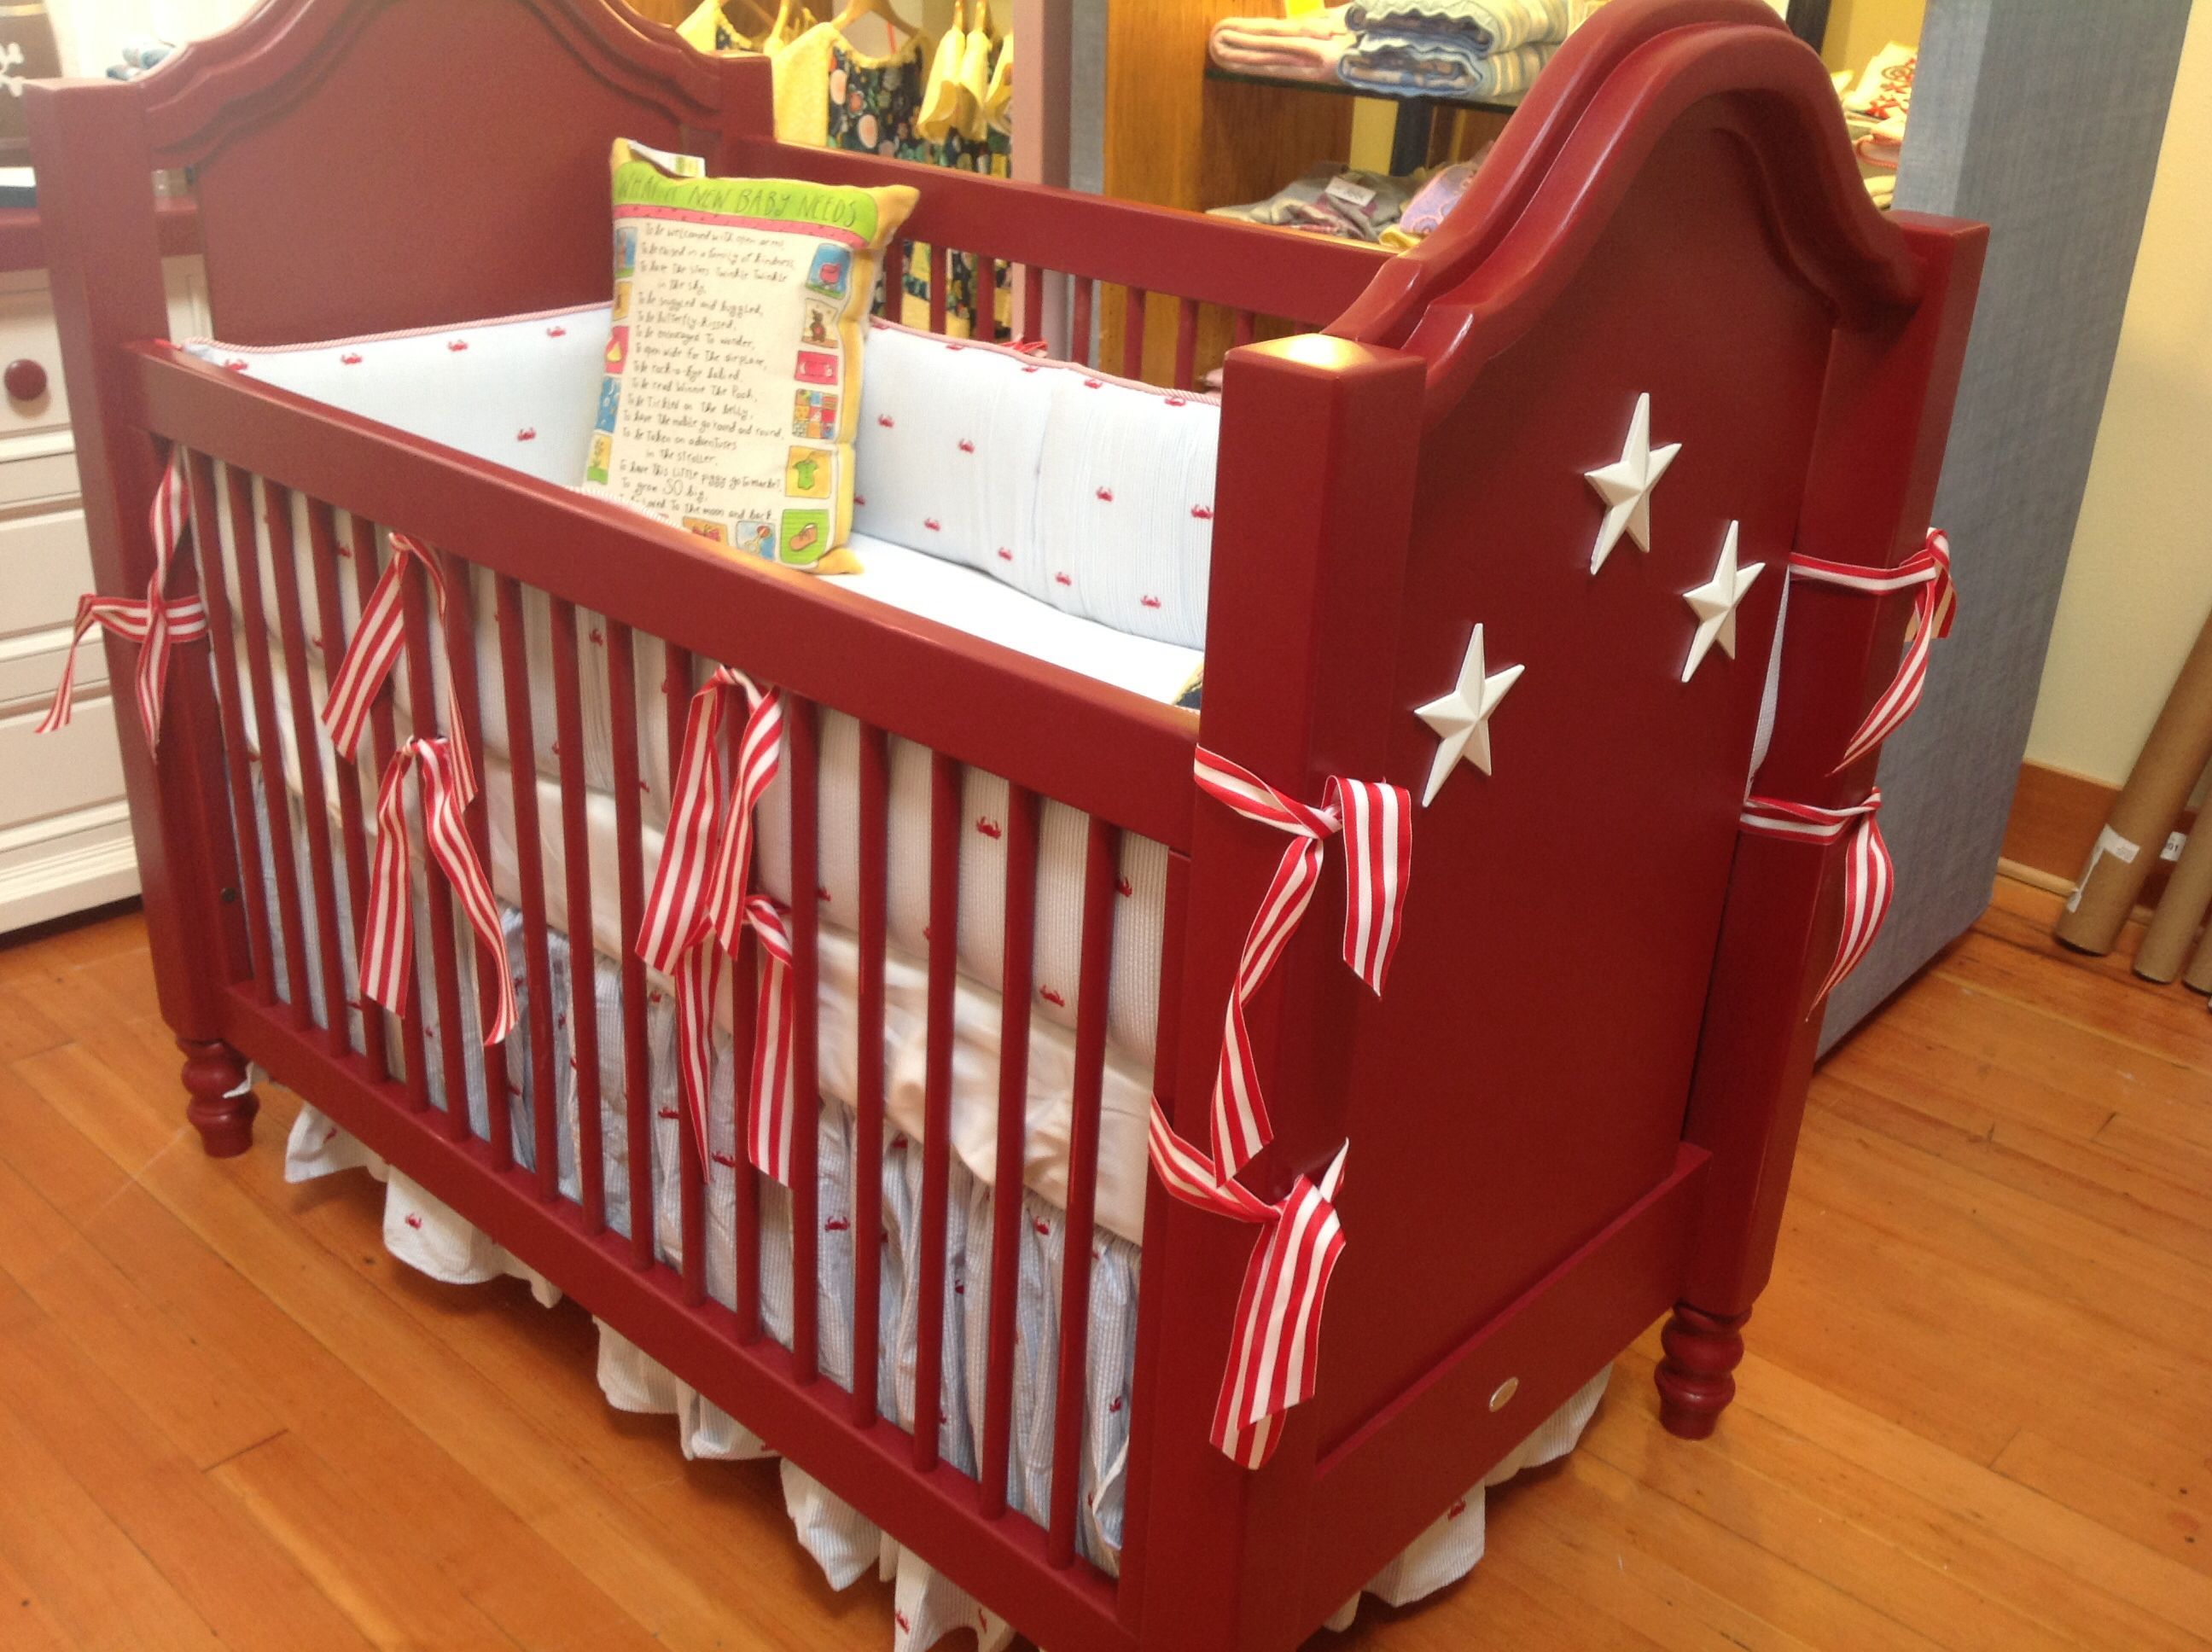 Newport Cottage Crib With Doodlefish Baby Bedding Solid Wood Crib Painted  Red With White Stars Appliqué